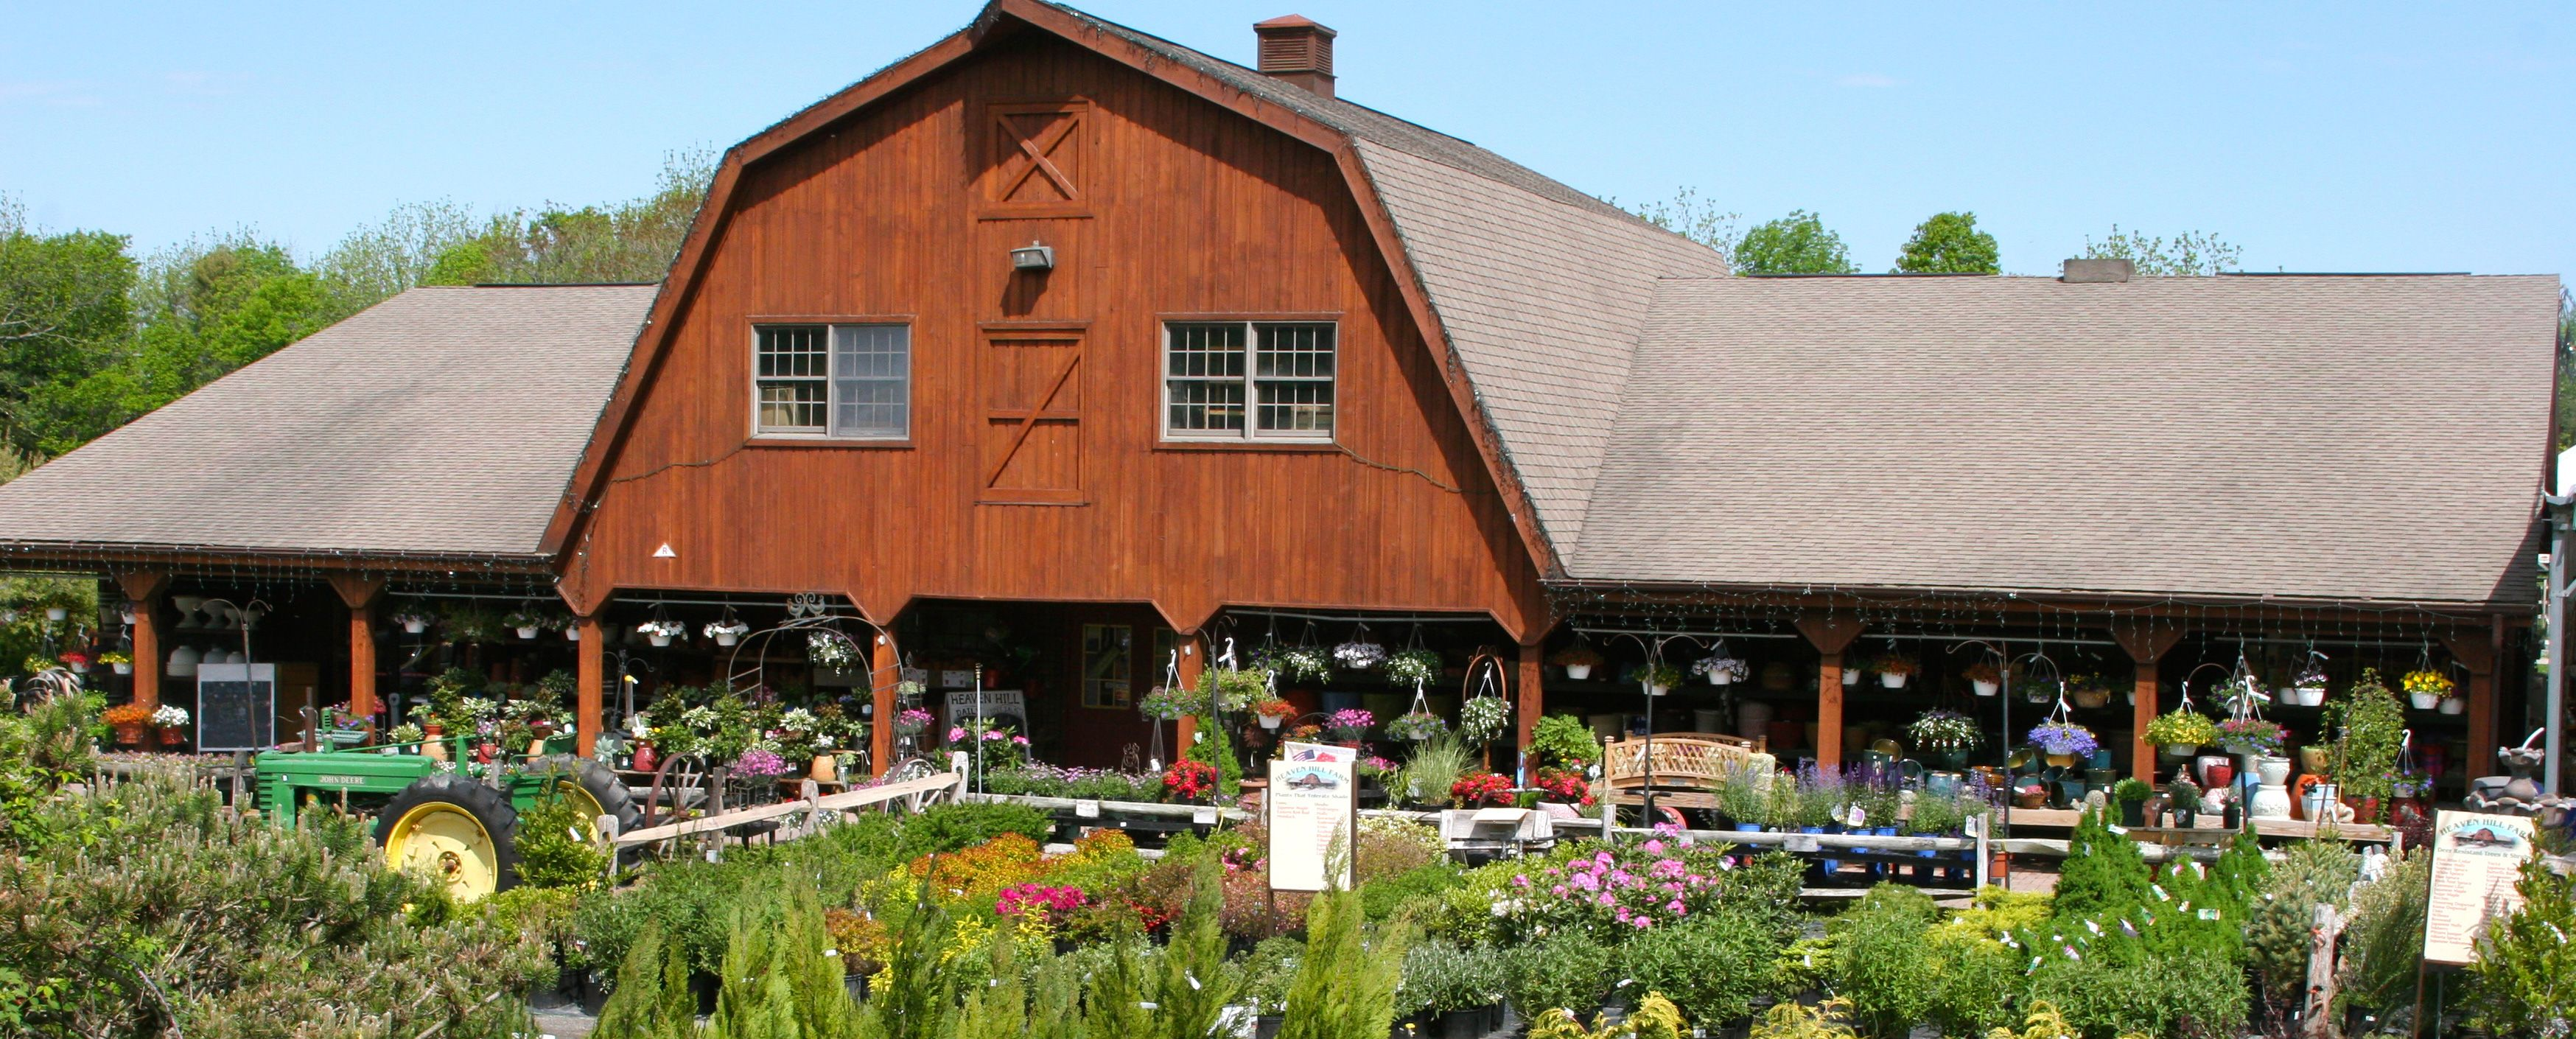 Farm Market Garden Center New Jersey New York In 2019 Farm